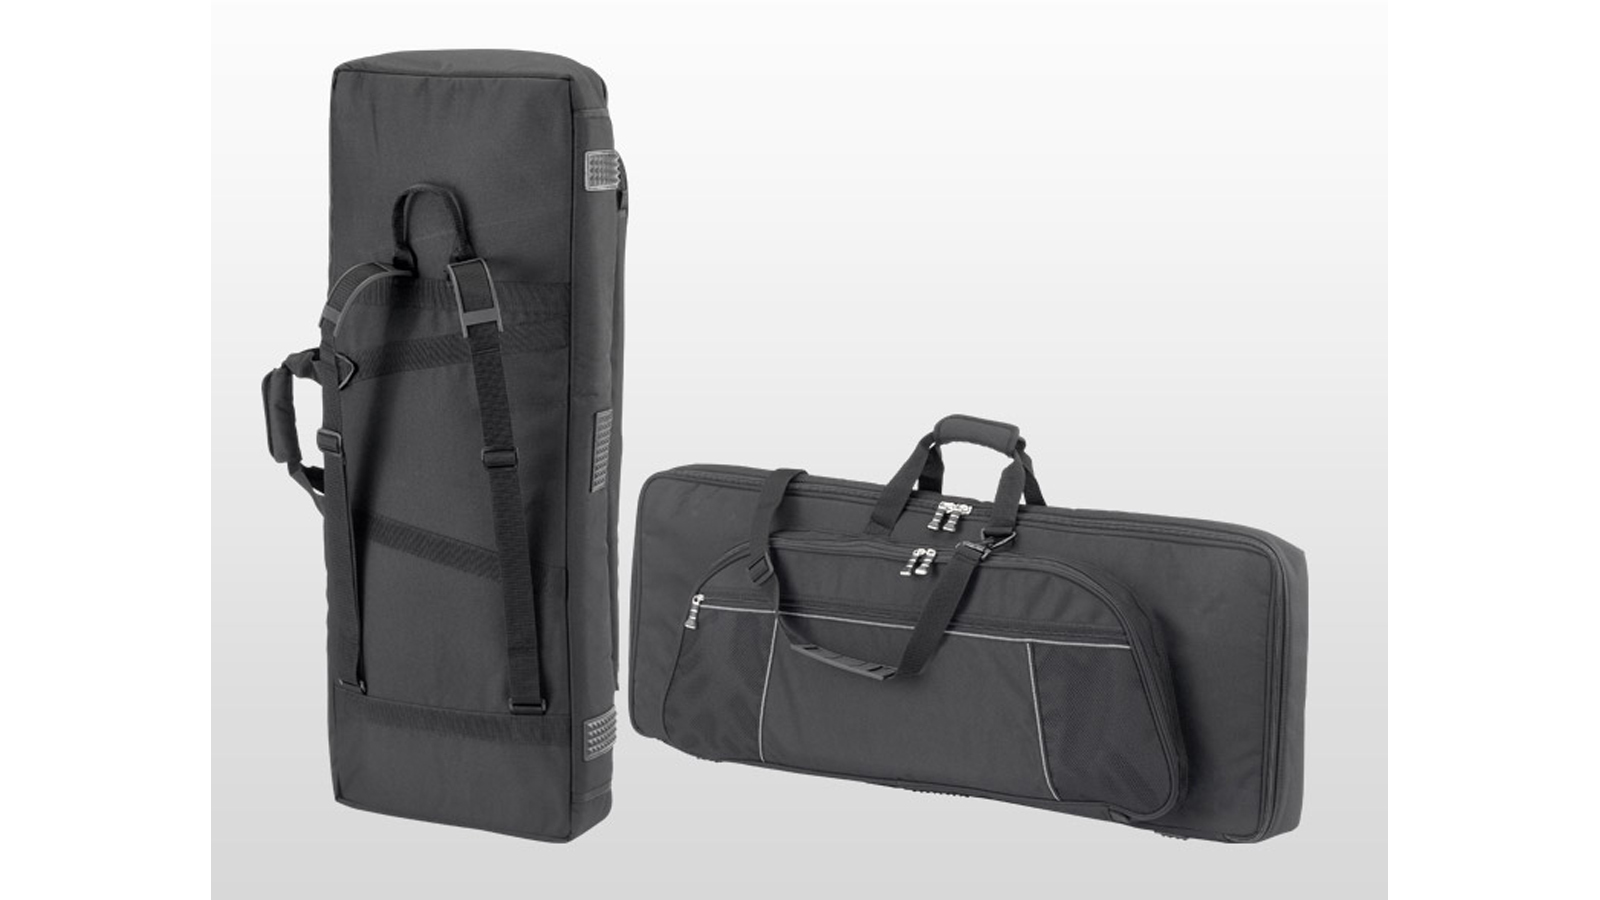 Soundwear Keyboard Bag Protector 104 x 27 x 12 cm